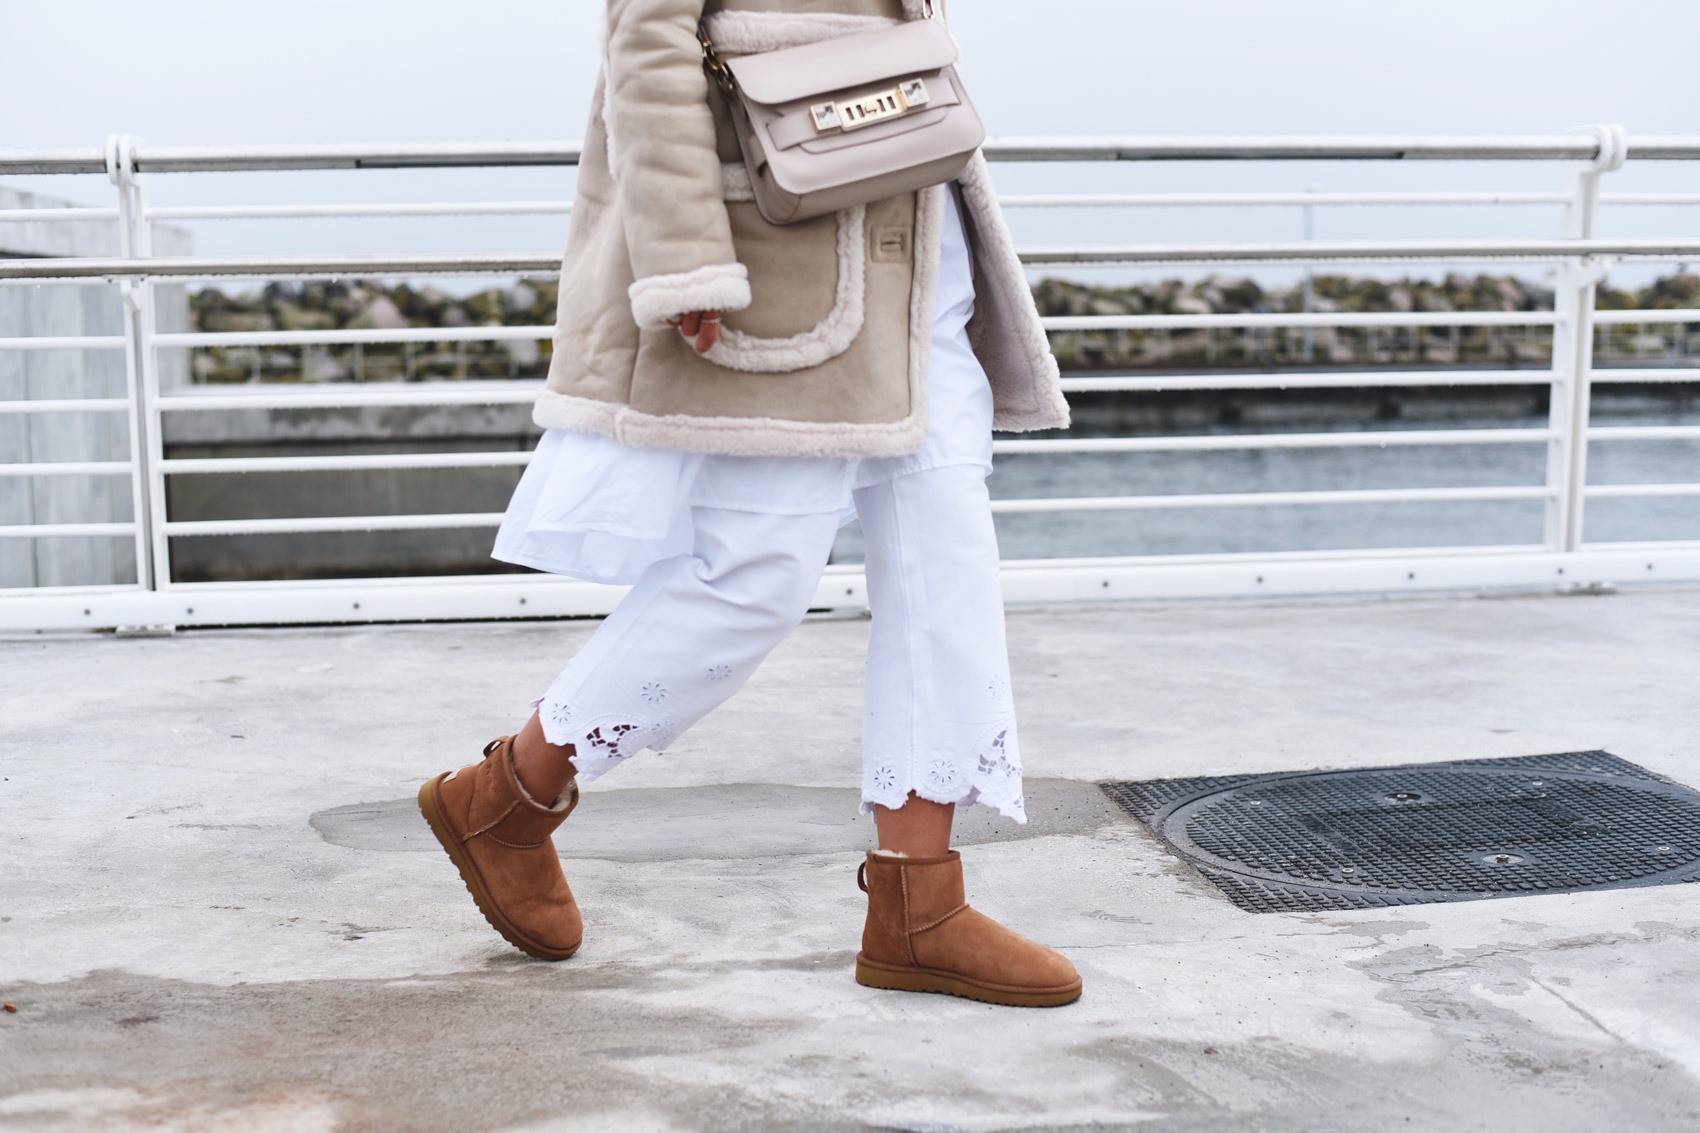 ugg-classic-chestnut-ii-mini-boots-suede-leather-blogger-streetstyle-fashiioncarpet